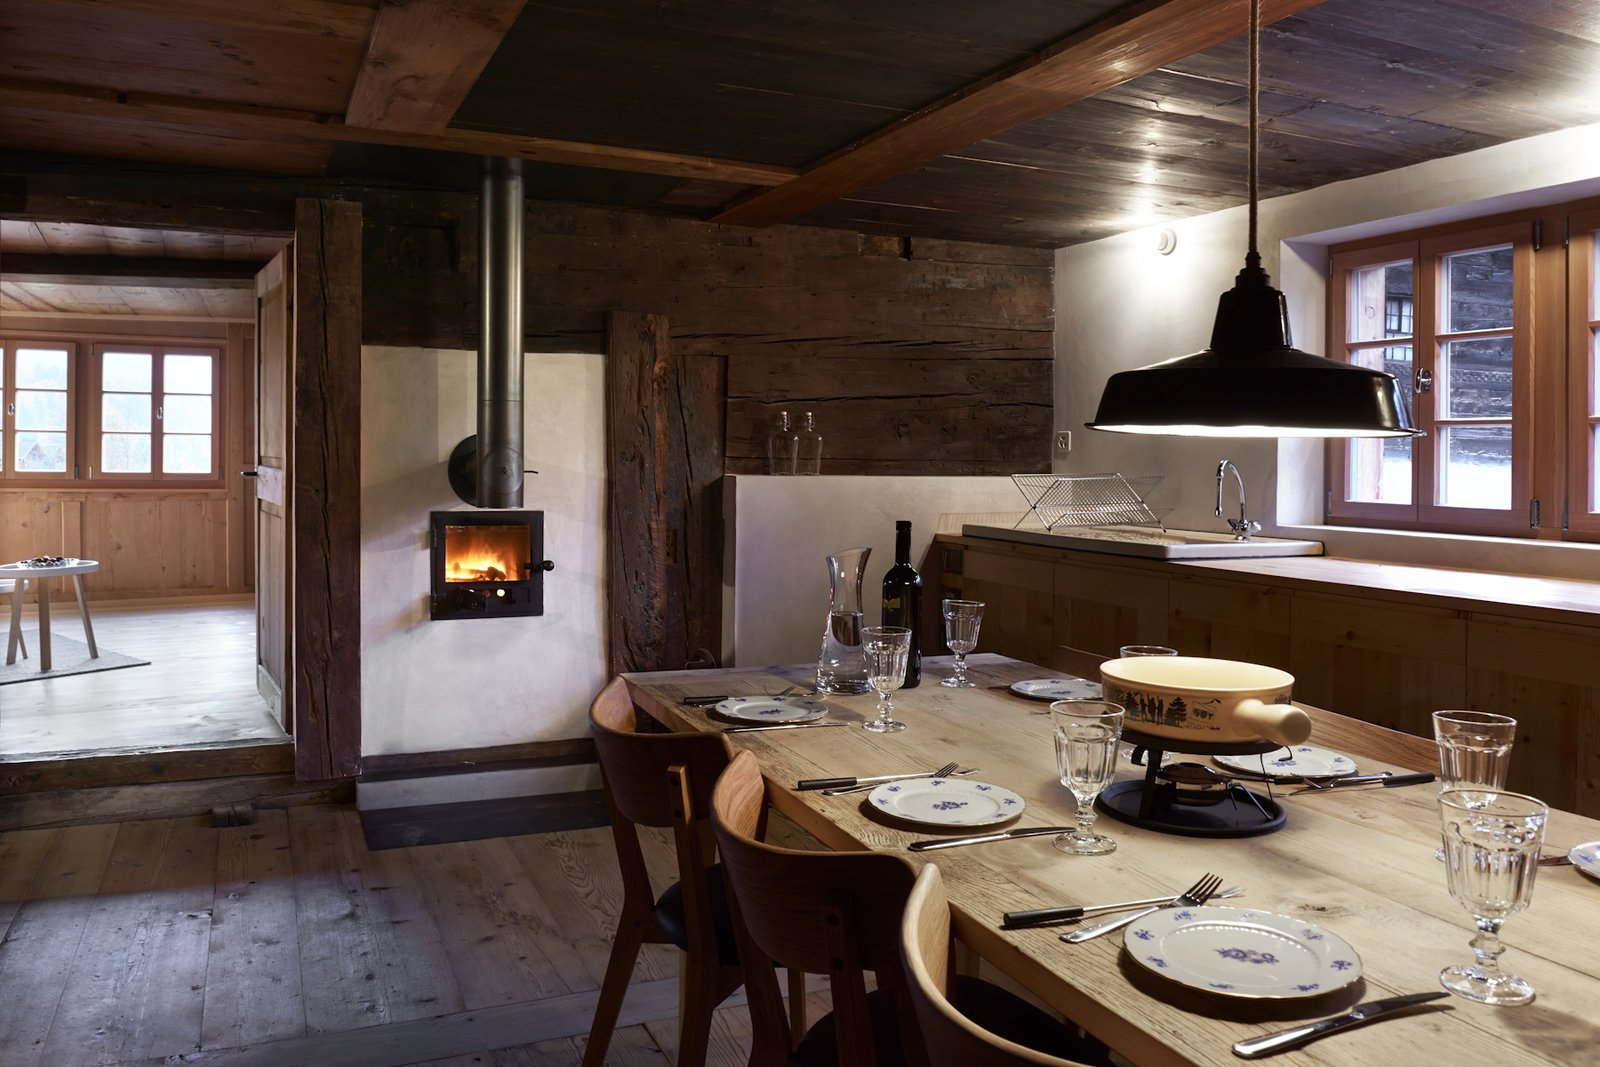 Tagged: Dining Room, Wood Burning Fireplace, Dark Hardwood Floor, Chair, Table, and Pendant Lighting. A Renovated Pagan House in the Swiss Alps Puts Guests in Touch With the Past - Photo 3 of 13